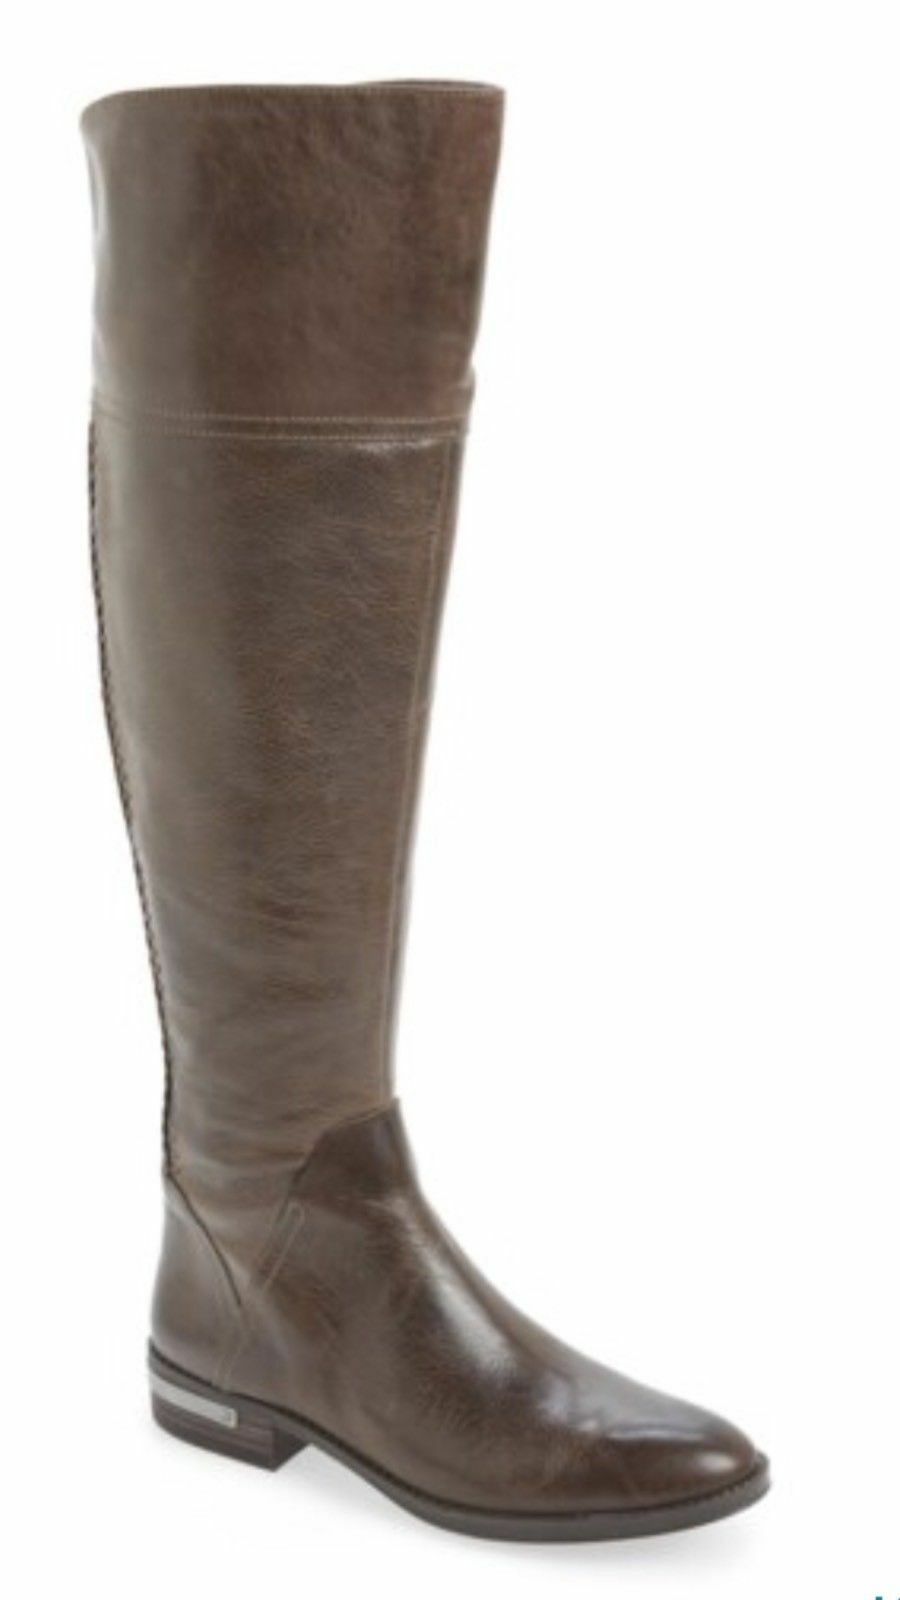 Vince Camuto Pedra Over Over Over The Knee Riding Boot Grey Leather Sz. 6 Wide Calf NEW b05ee5